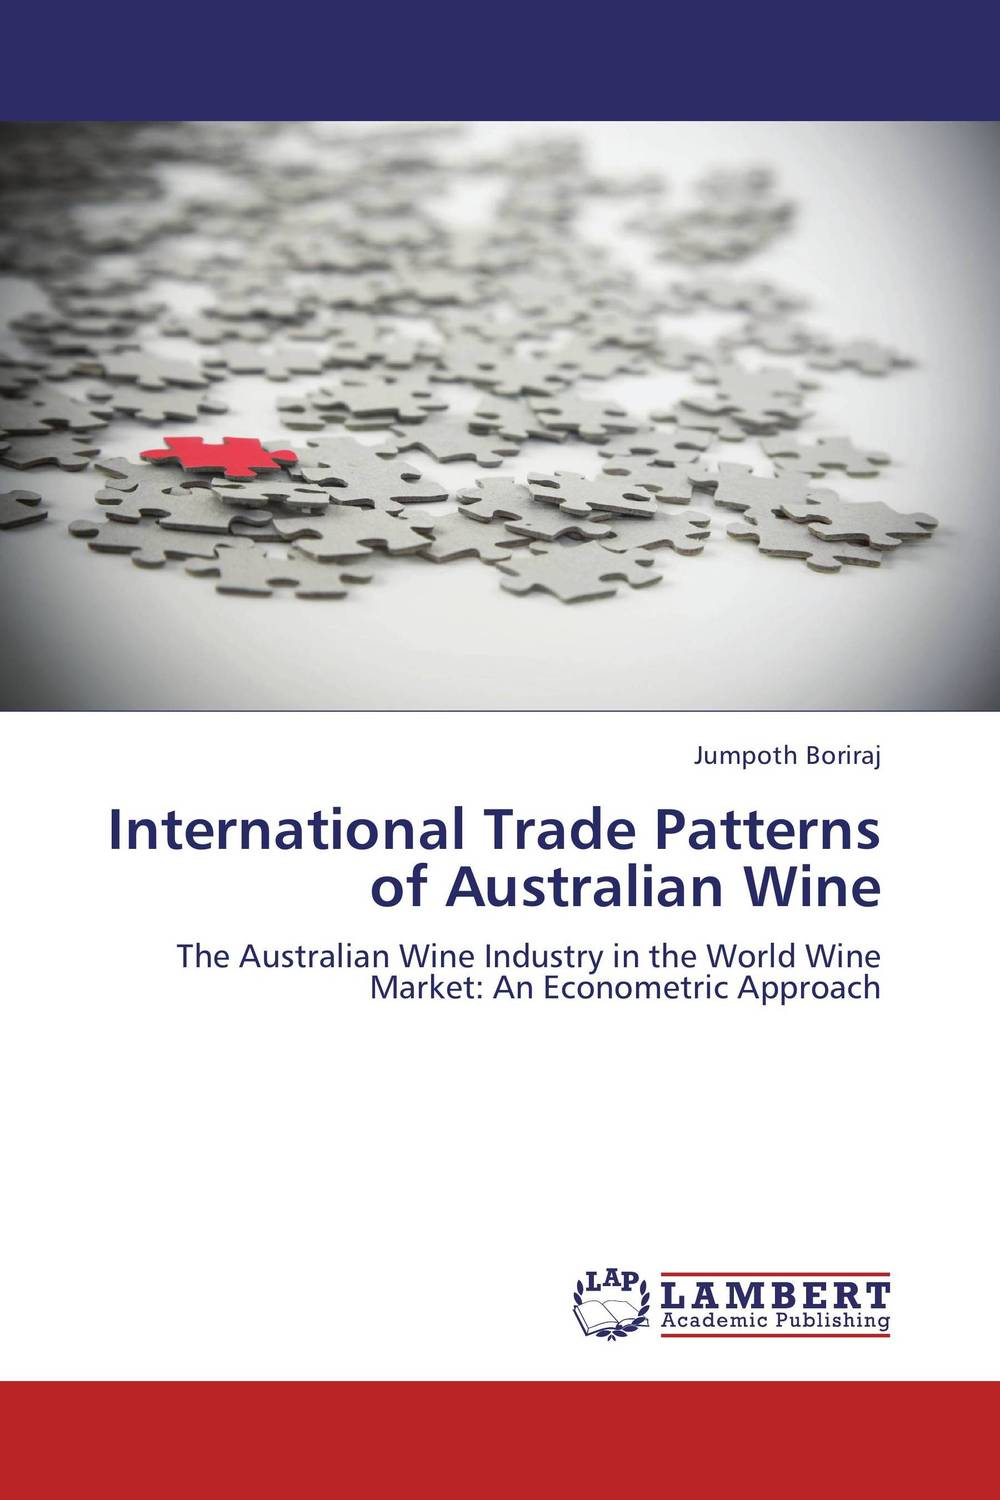 International Trade Patterns of Australian Wine